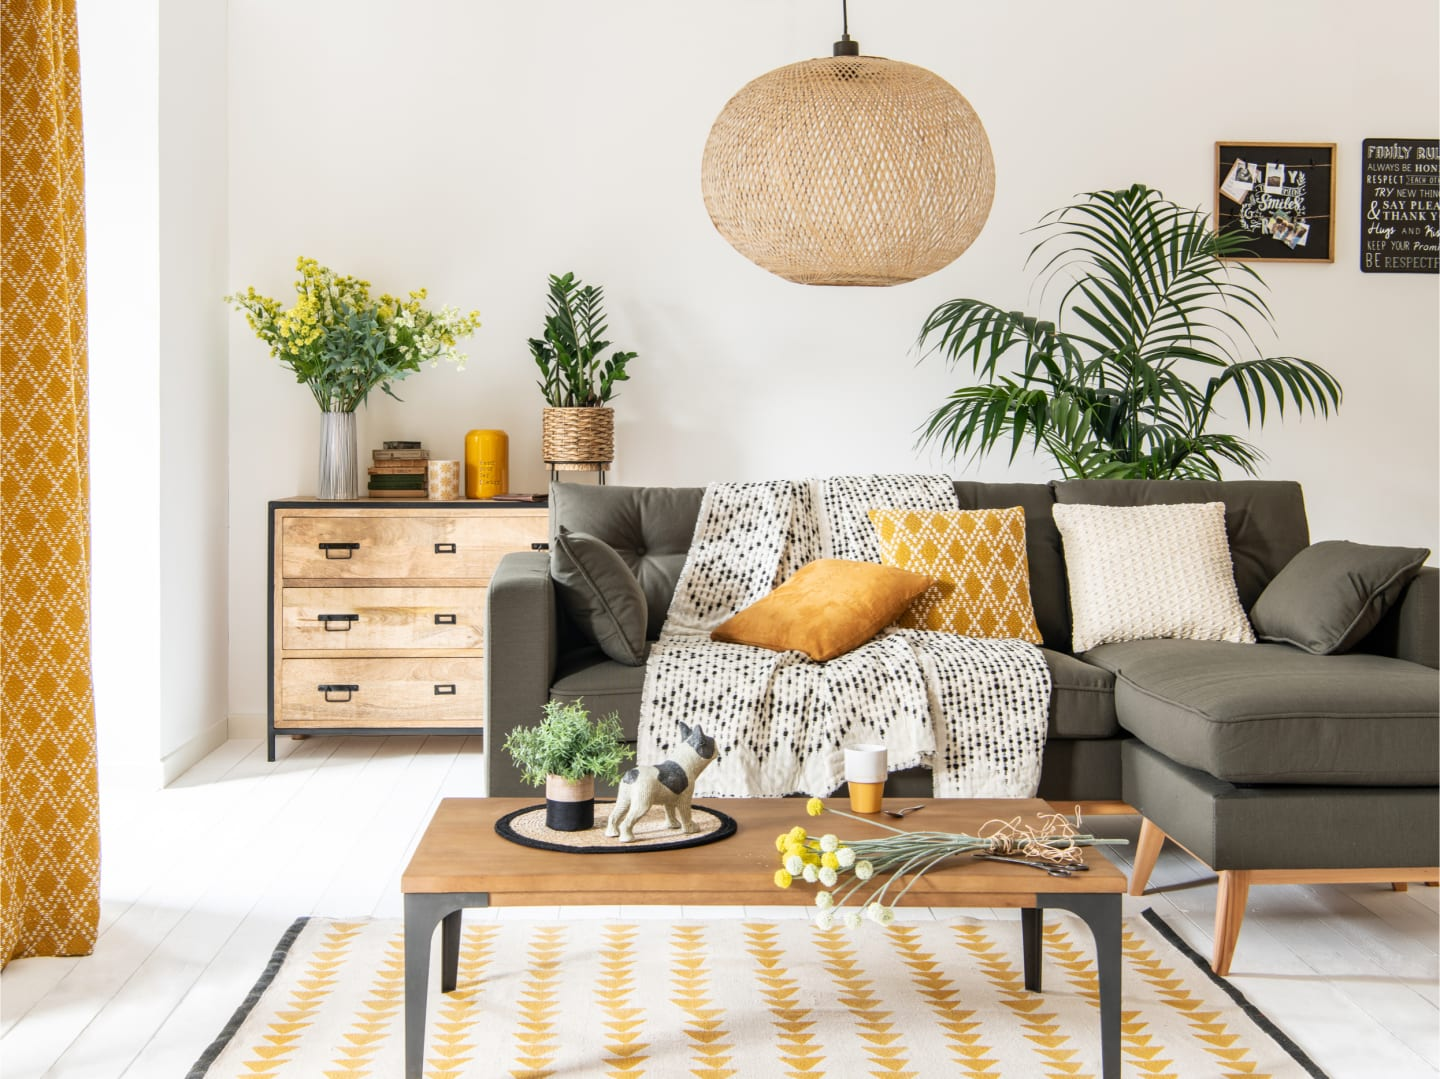 Maison Du Monde Stühle : collezione decorazione 2019 maisons du monde ~ Watch28wear.com Haus und Dekorationen